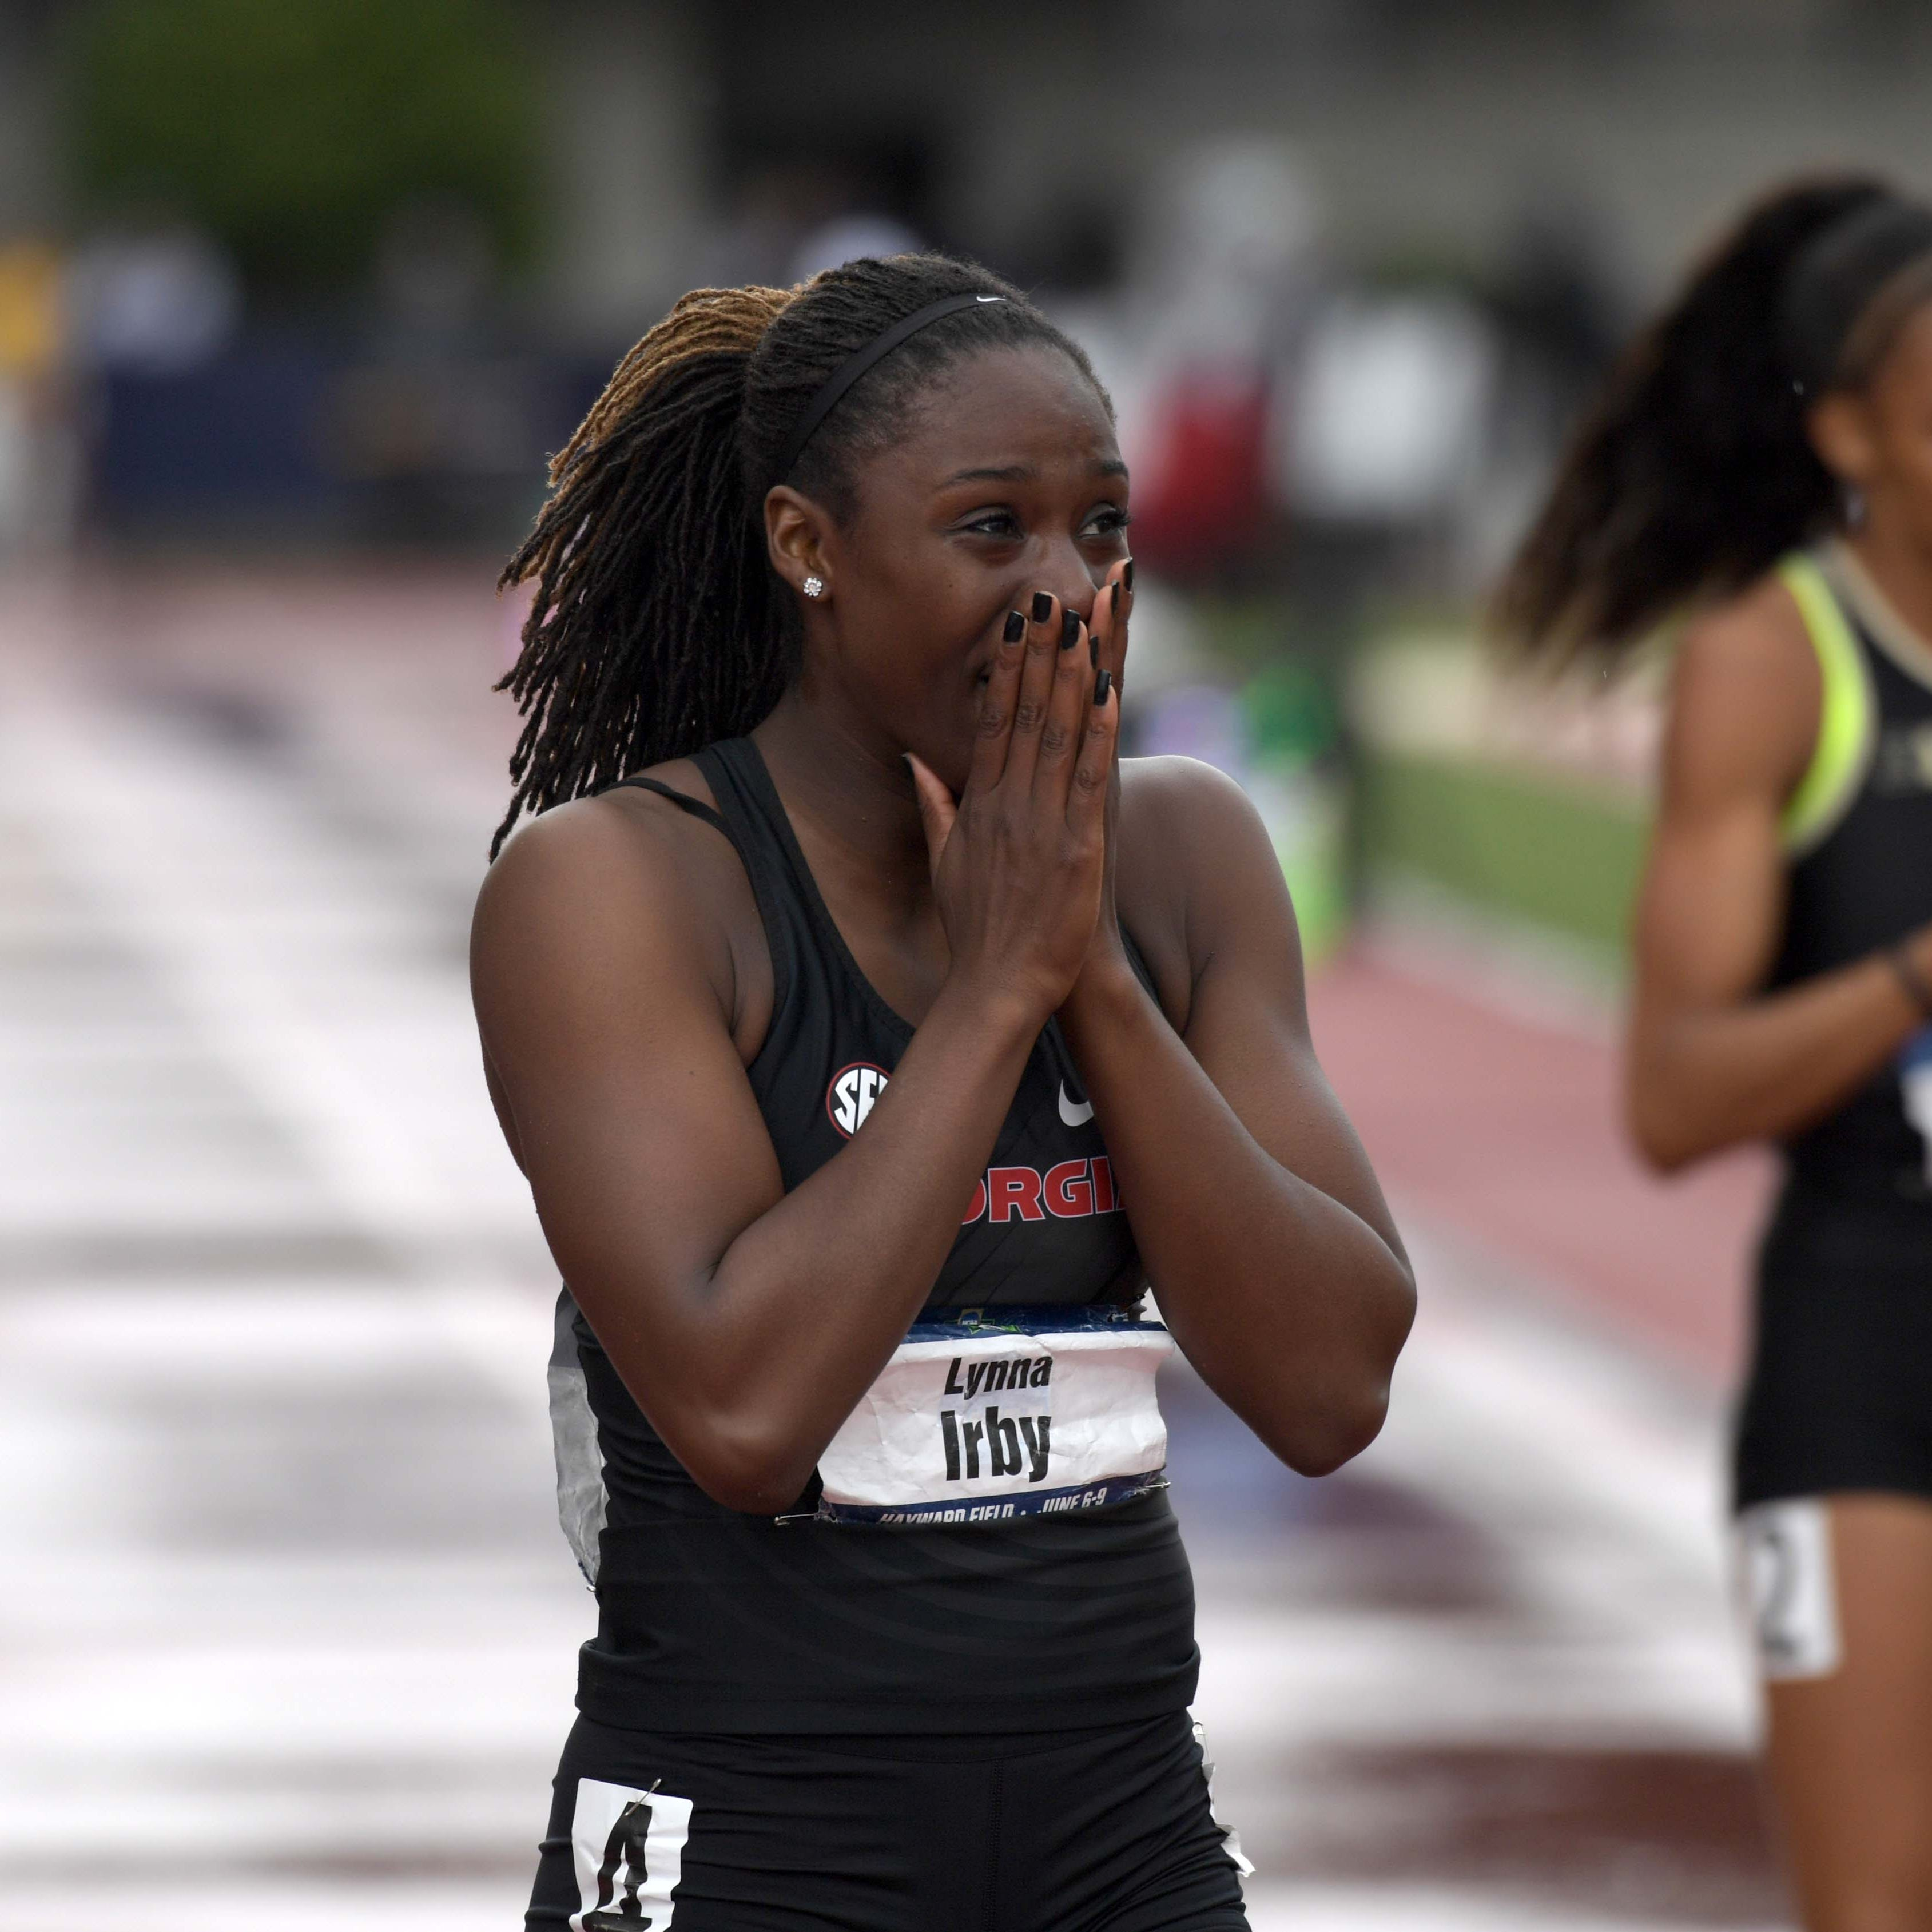 Lynna Irby of Georgia reacts after winning the women's 400m in a meet record 49.80 during the NCAA Track and Field championships at Hayward Field in 2018.